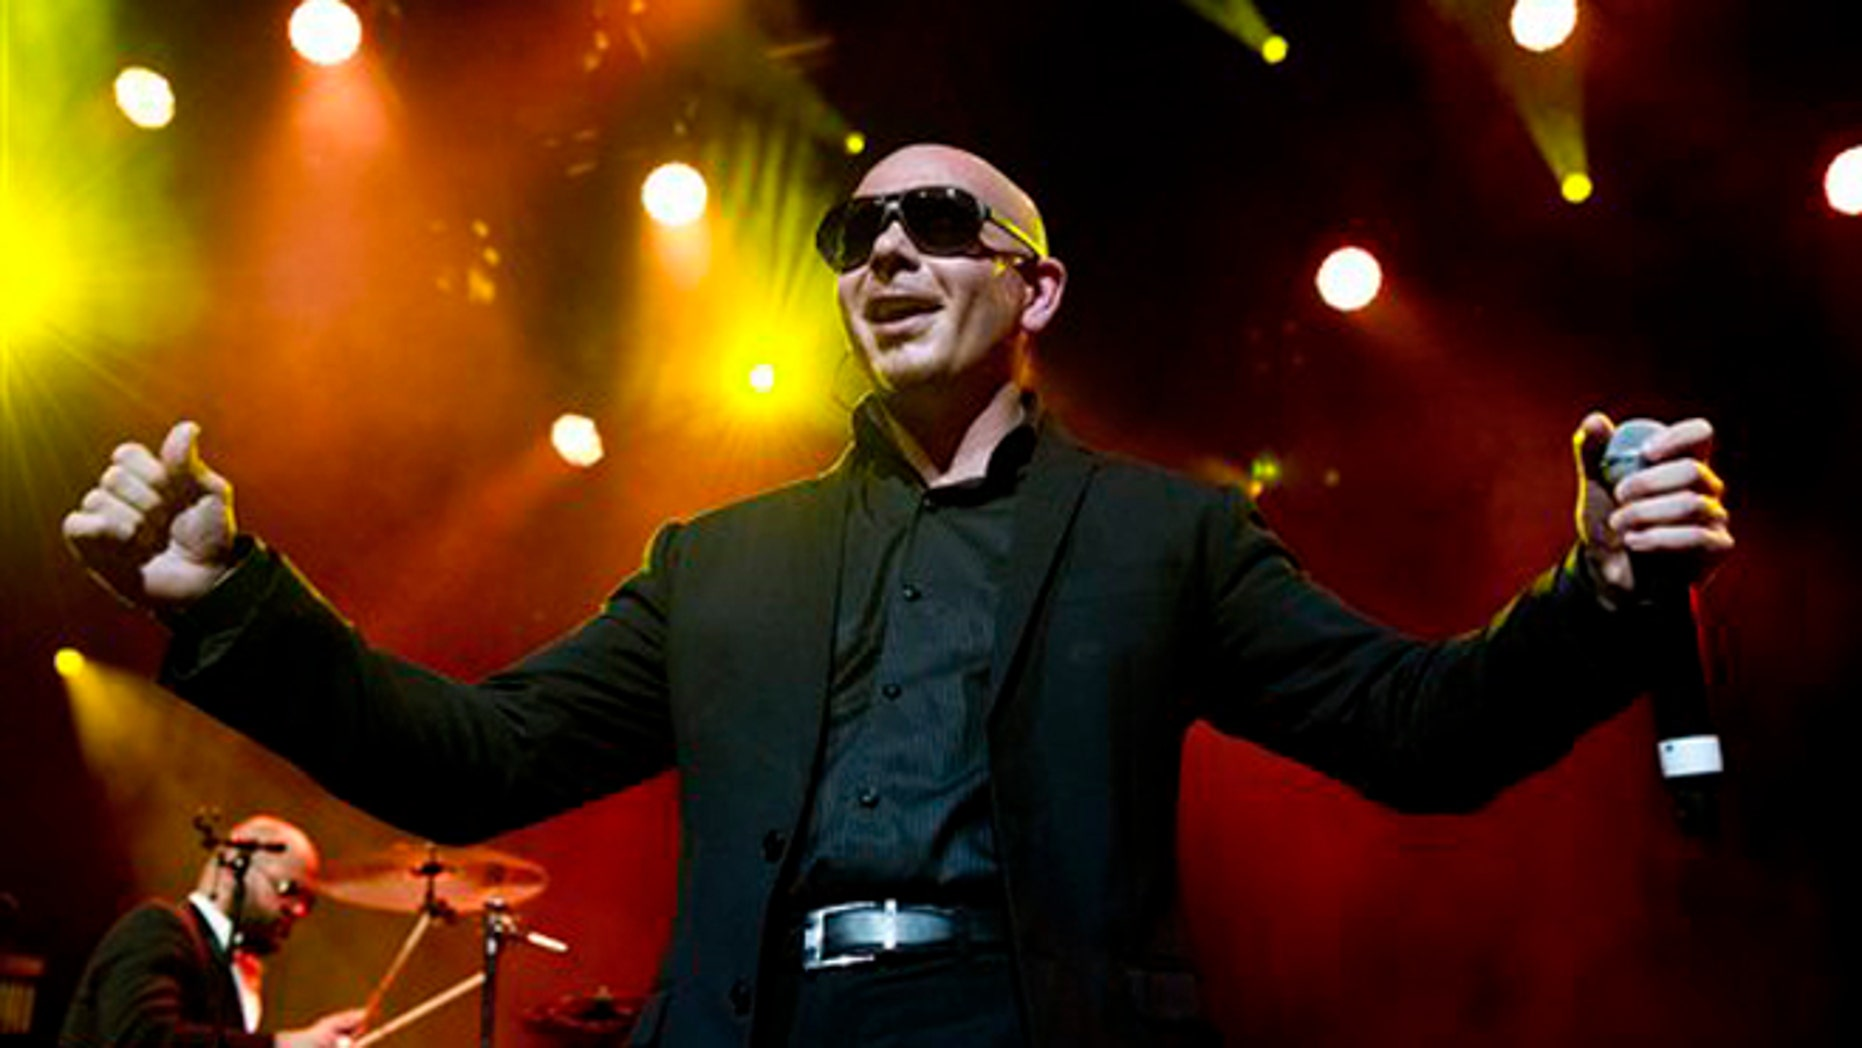 July 9, 2012: Cuban-American rapper Pitbull performs on the Stravinski Hall stage during the 46th Montreux Jazz Festival in Montreux.